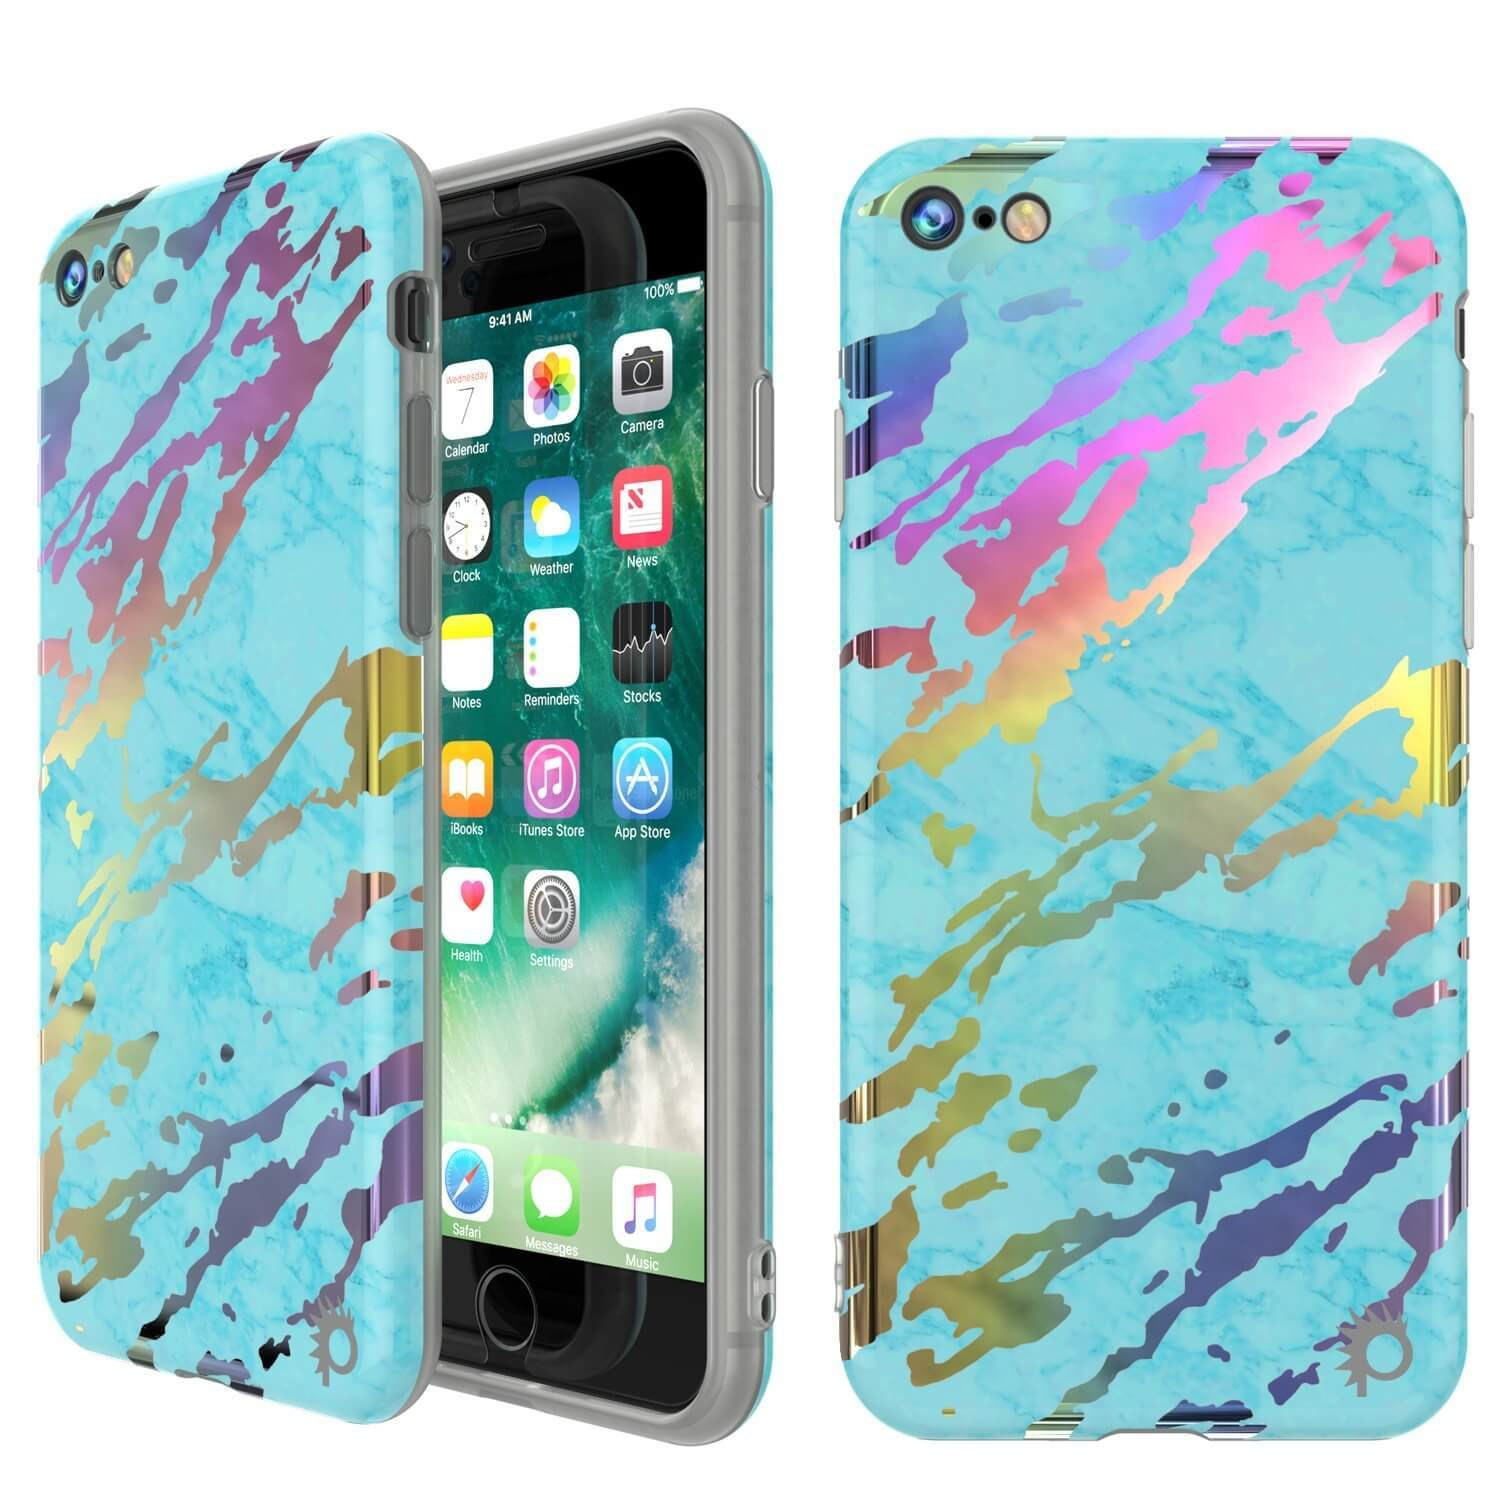 Punkcase iPhone 8 / 7 Marble Case, Protective Full Body Cover W/9H Tempered Glass Screen Protector (Teal Onyx)